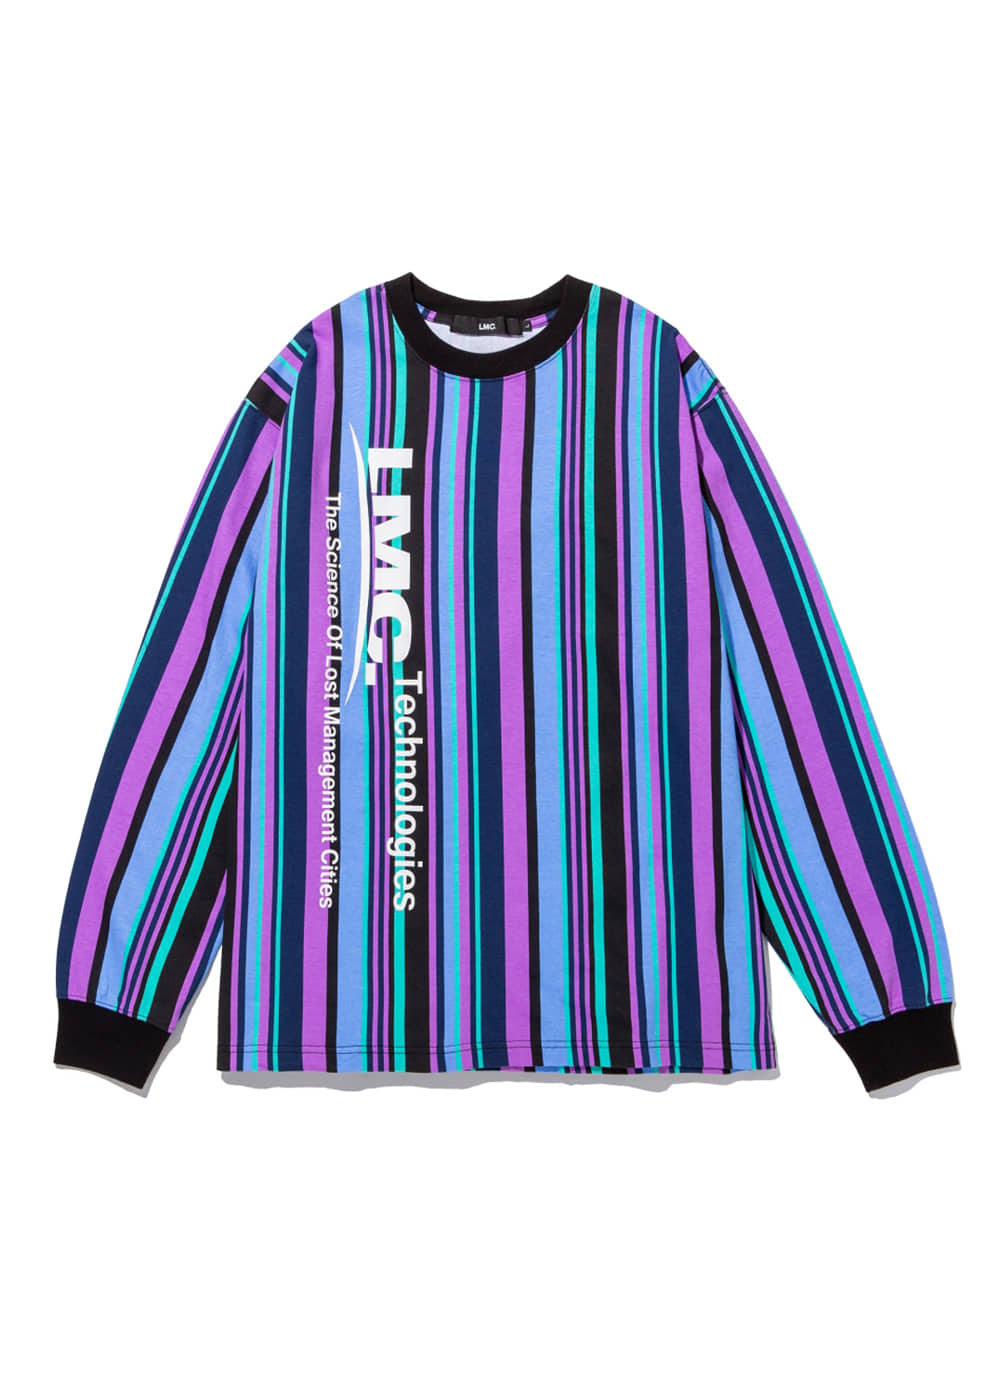 LMC VERTICAL MULTI STRIPE LONG SLV TEE blue